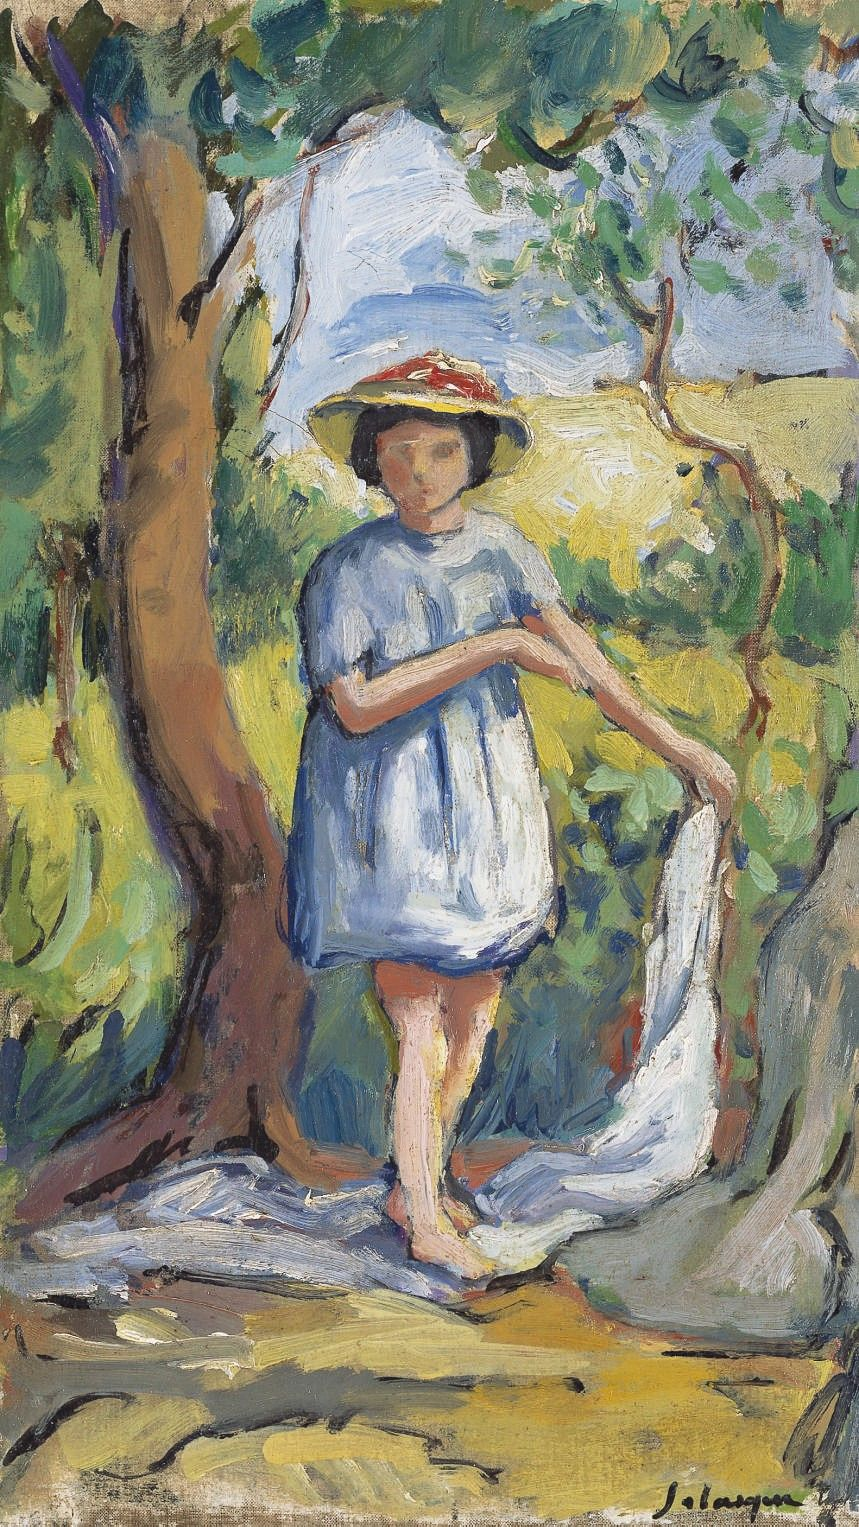 Lawrence Lee Magnuson Henri Lebasque France 1865 1937 Petite Fille Post Impressionists Post Impressionism Lovers Art